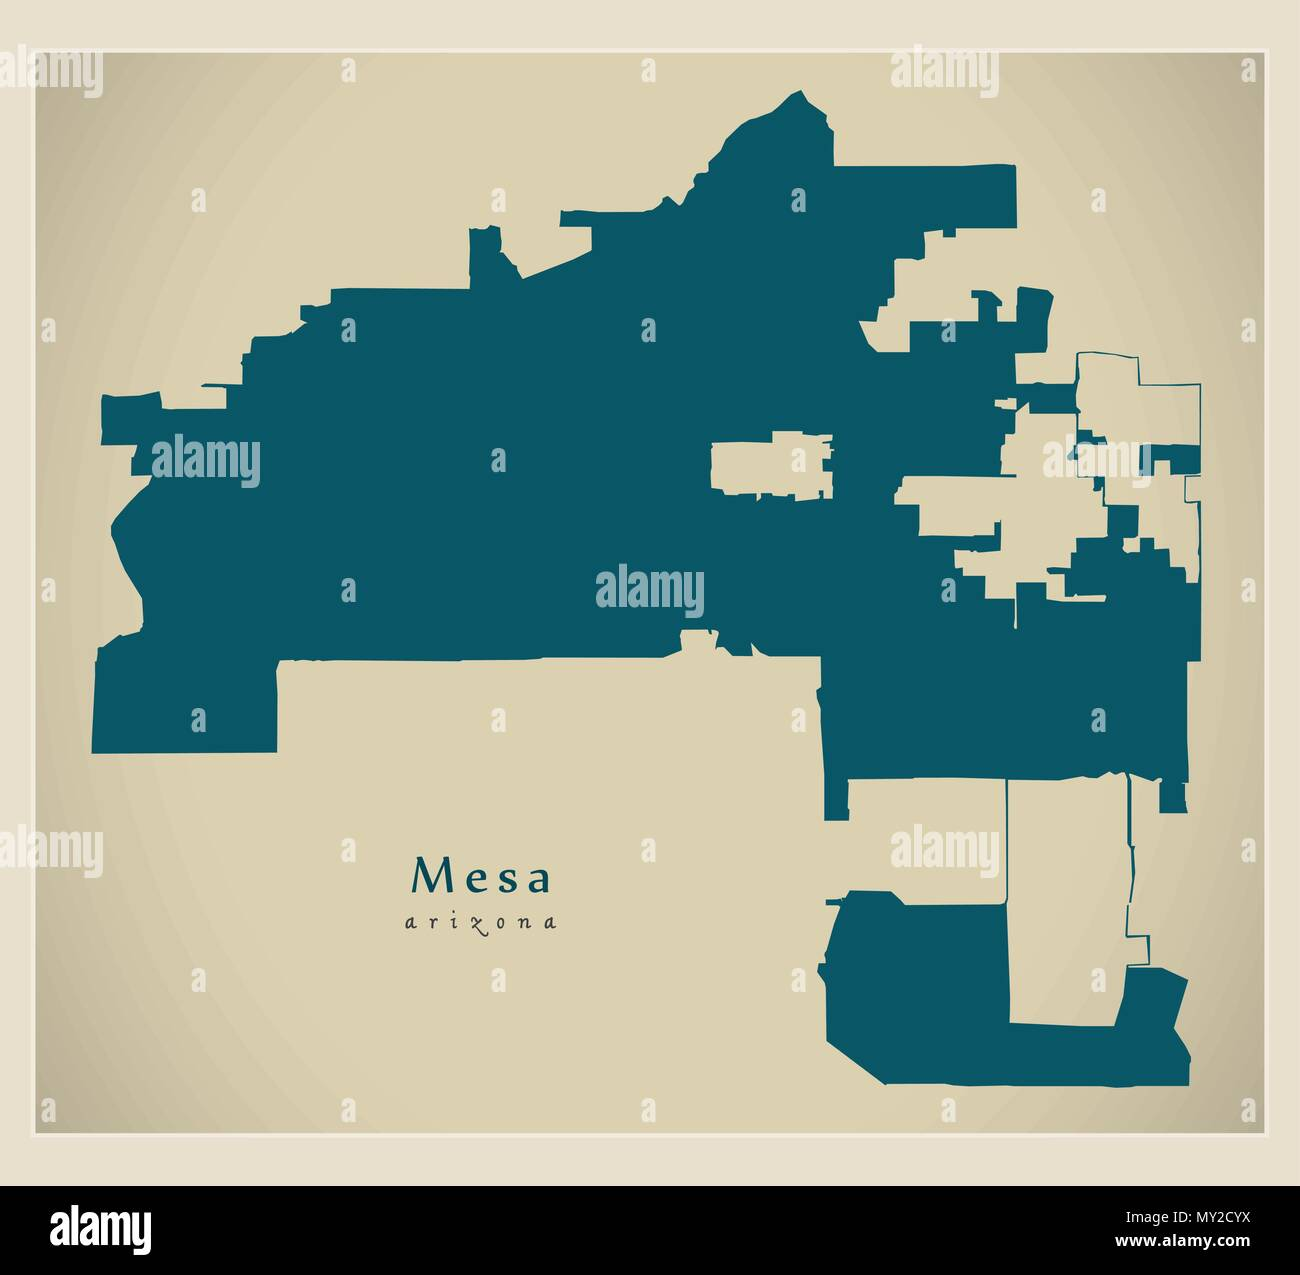 Modern City Map - Mesa Arizona city of the USA Stock Vector ...